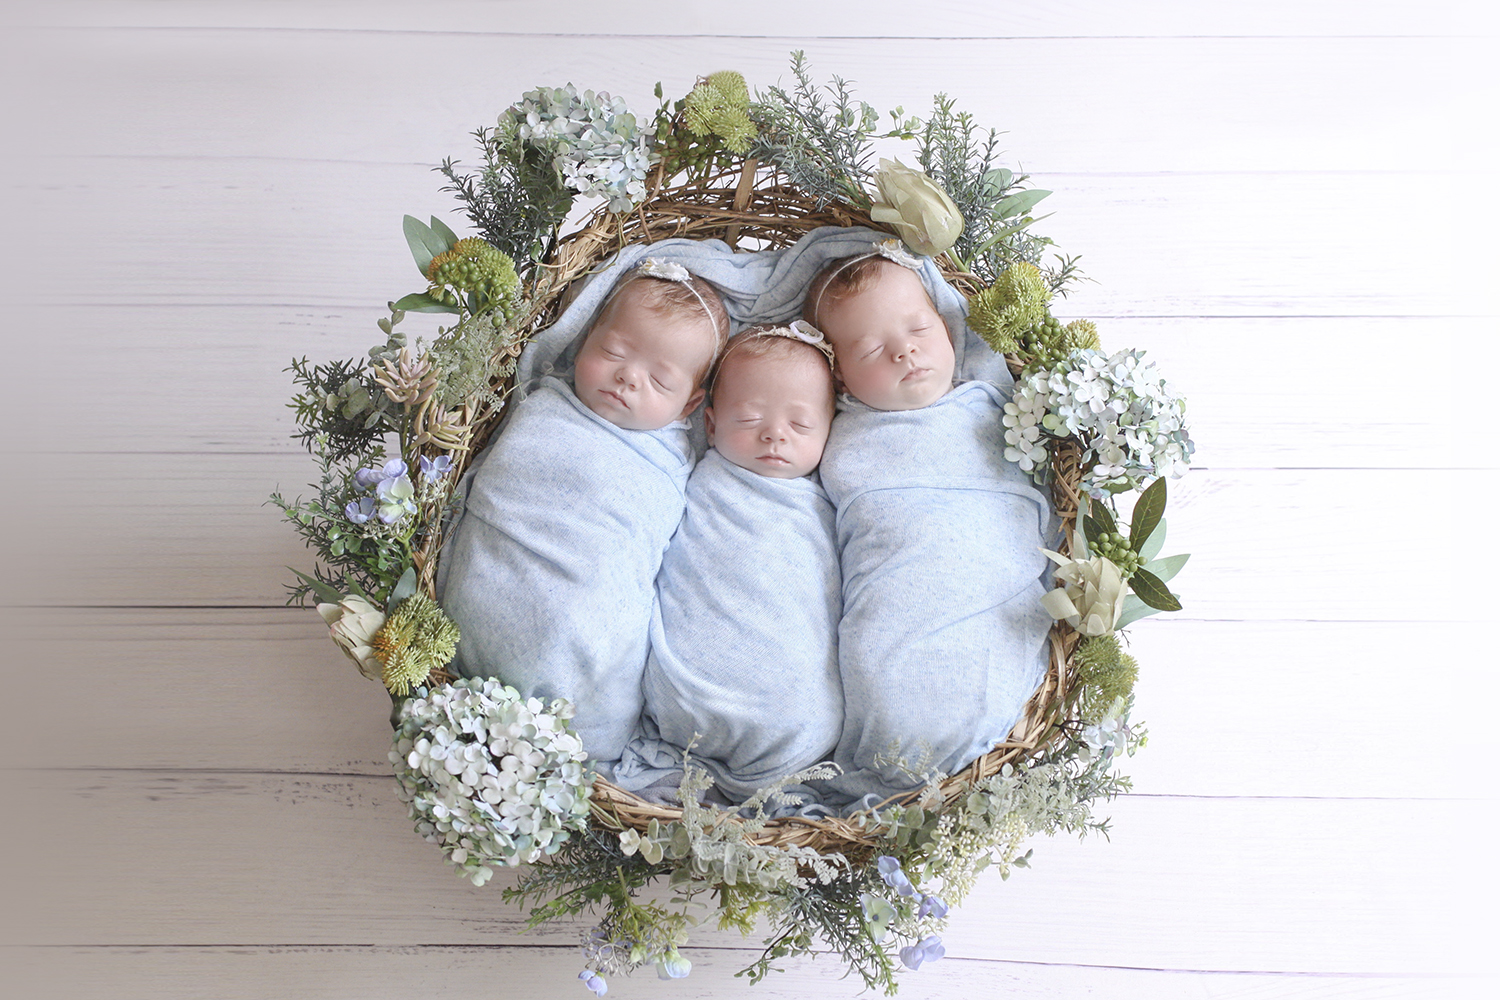 Newborn twin girls wrapped in blue blankets in a blue floral nest on white wooden floor wearing blue flower tiebacks